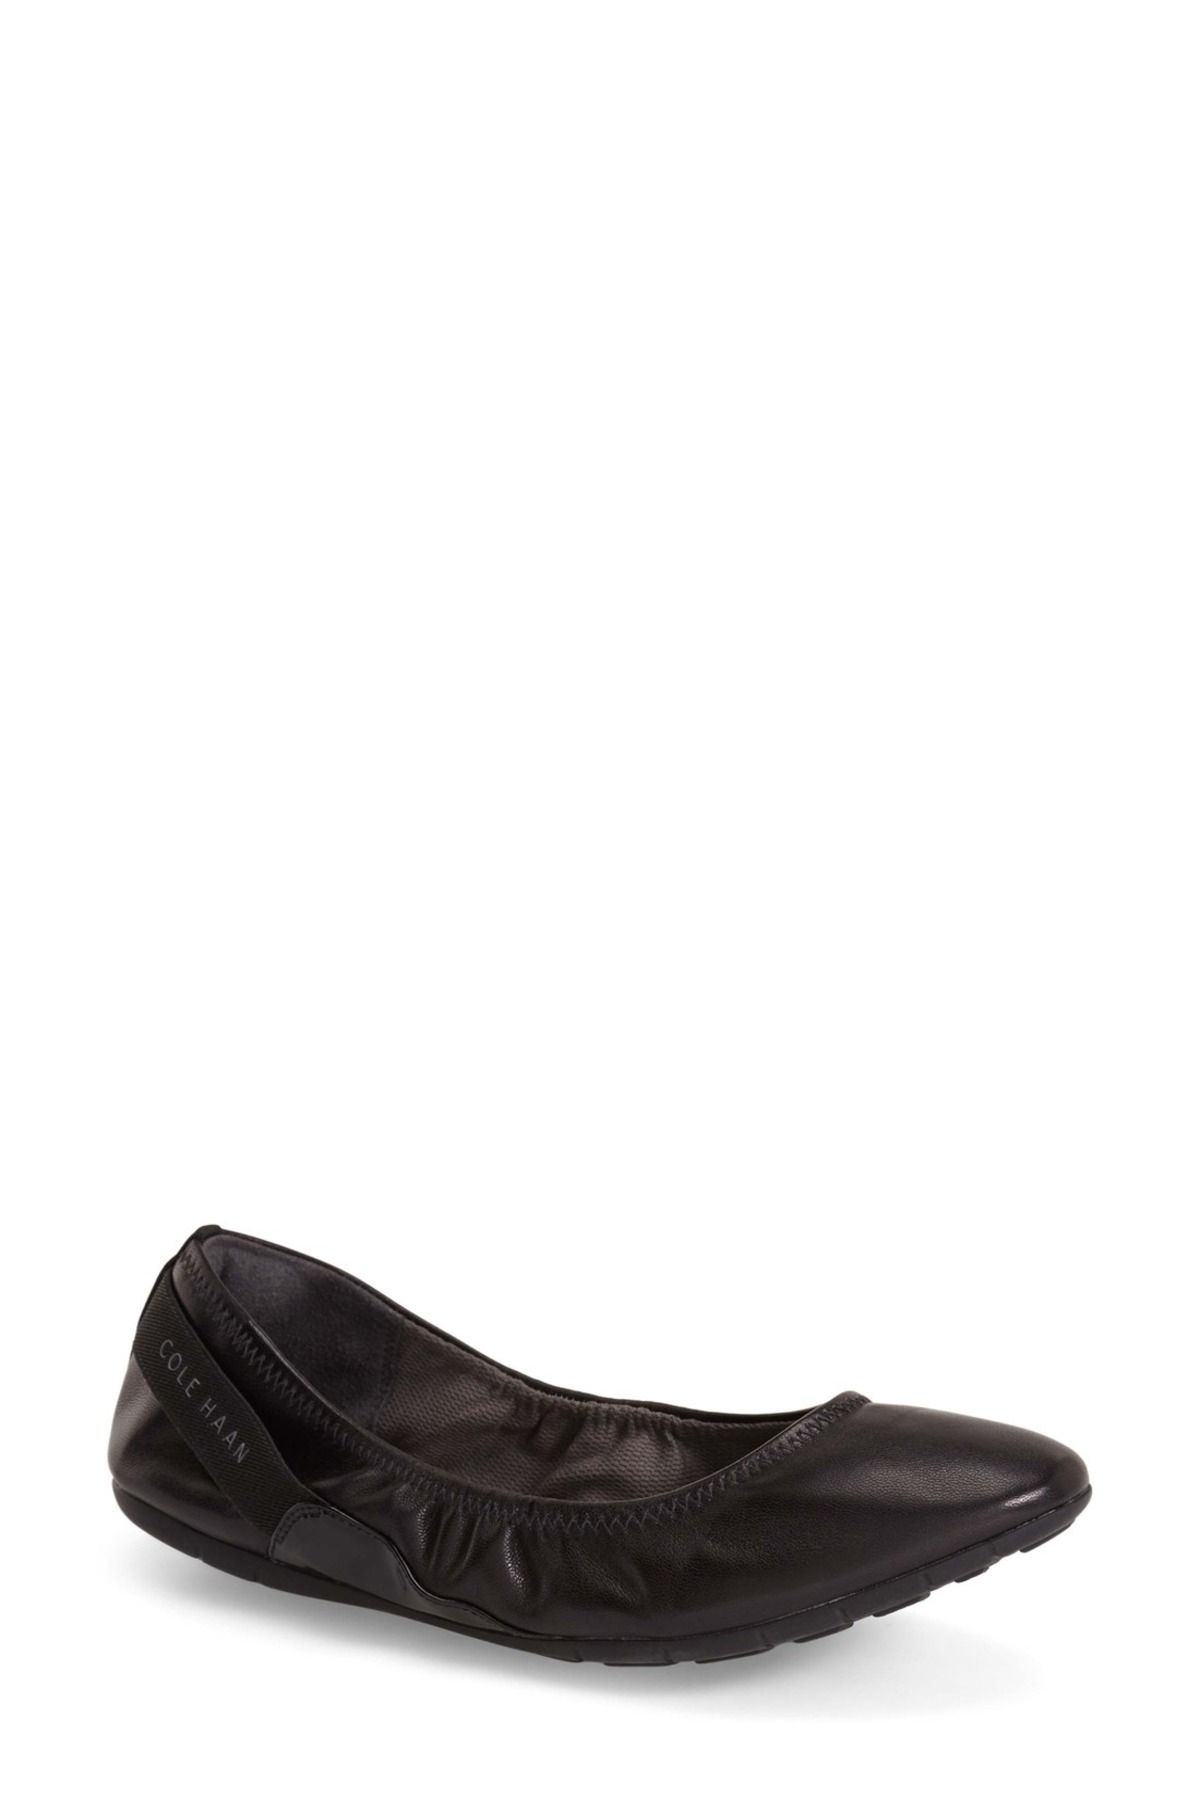 b38e160b427 Cole Haan - Zerogrand Ballet Flat - Wide Width Available at Nordstrom Rack.  Free Shipping on orders over  100.